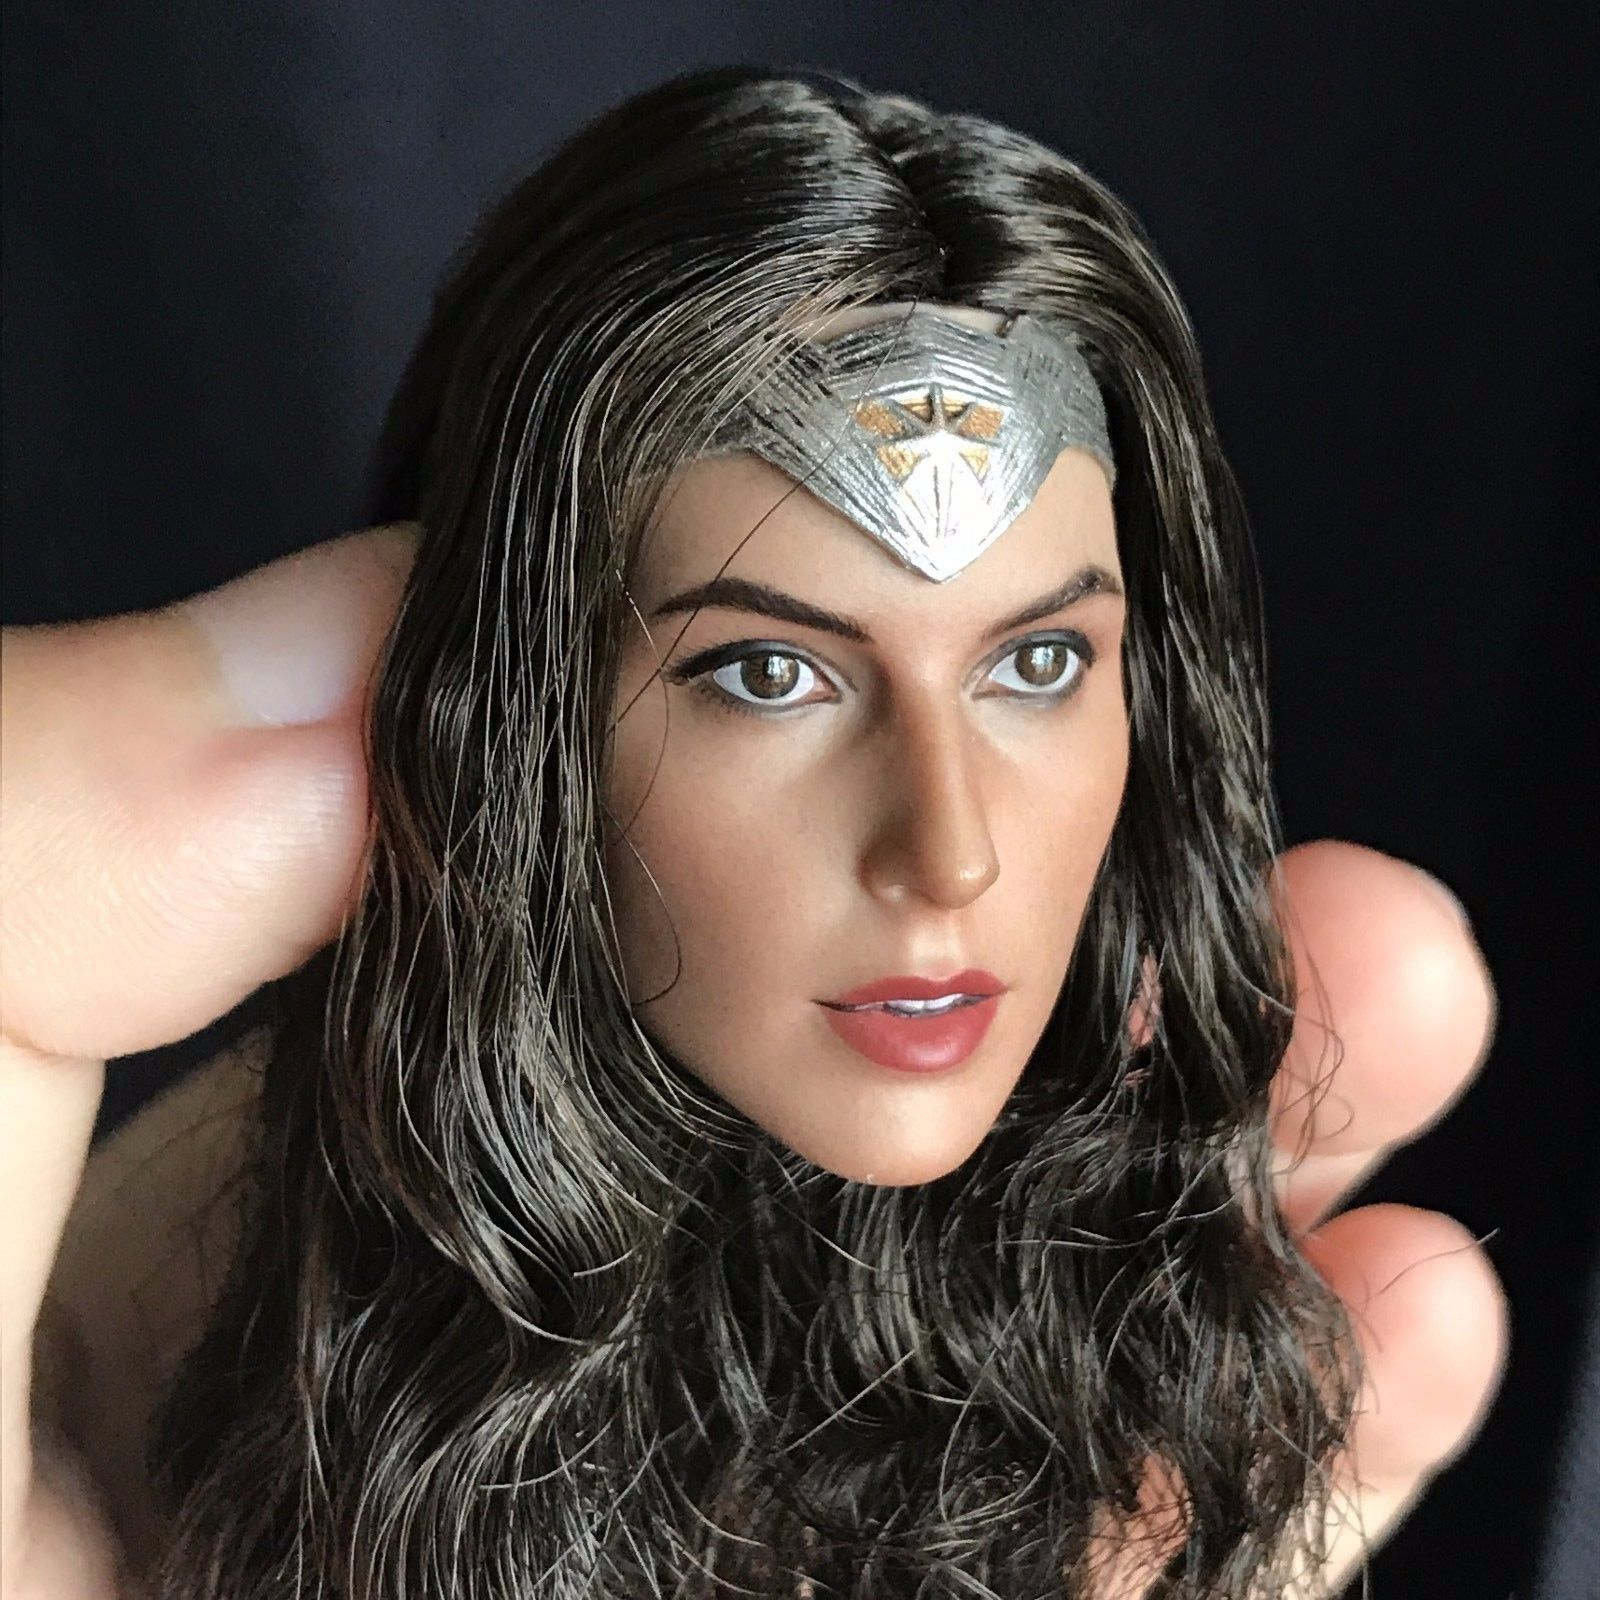 ❶IN STOCK❶ 1//6 Female Head Sculpt B Gal Gadot Wonder Woman Braided for Phicen